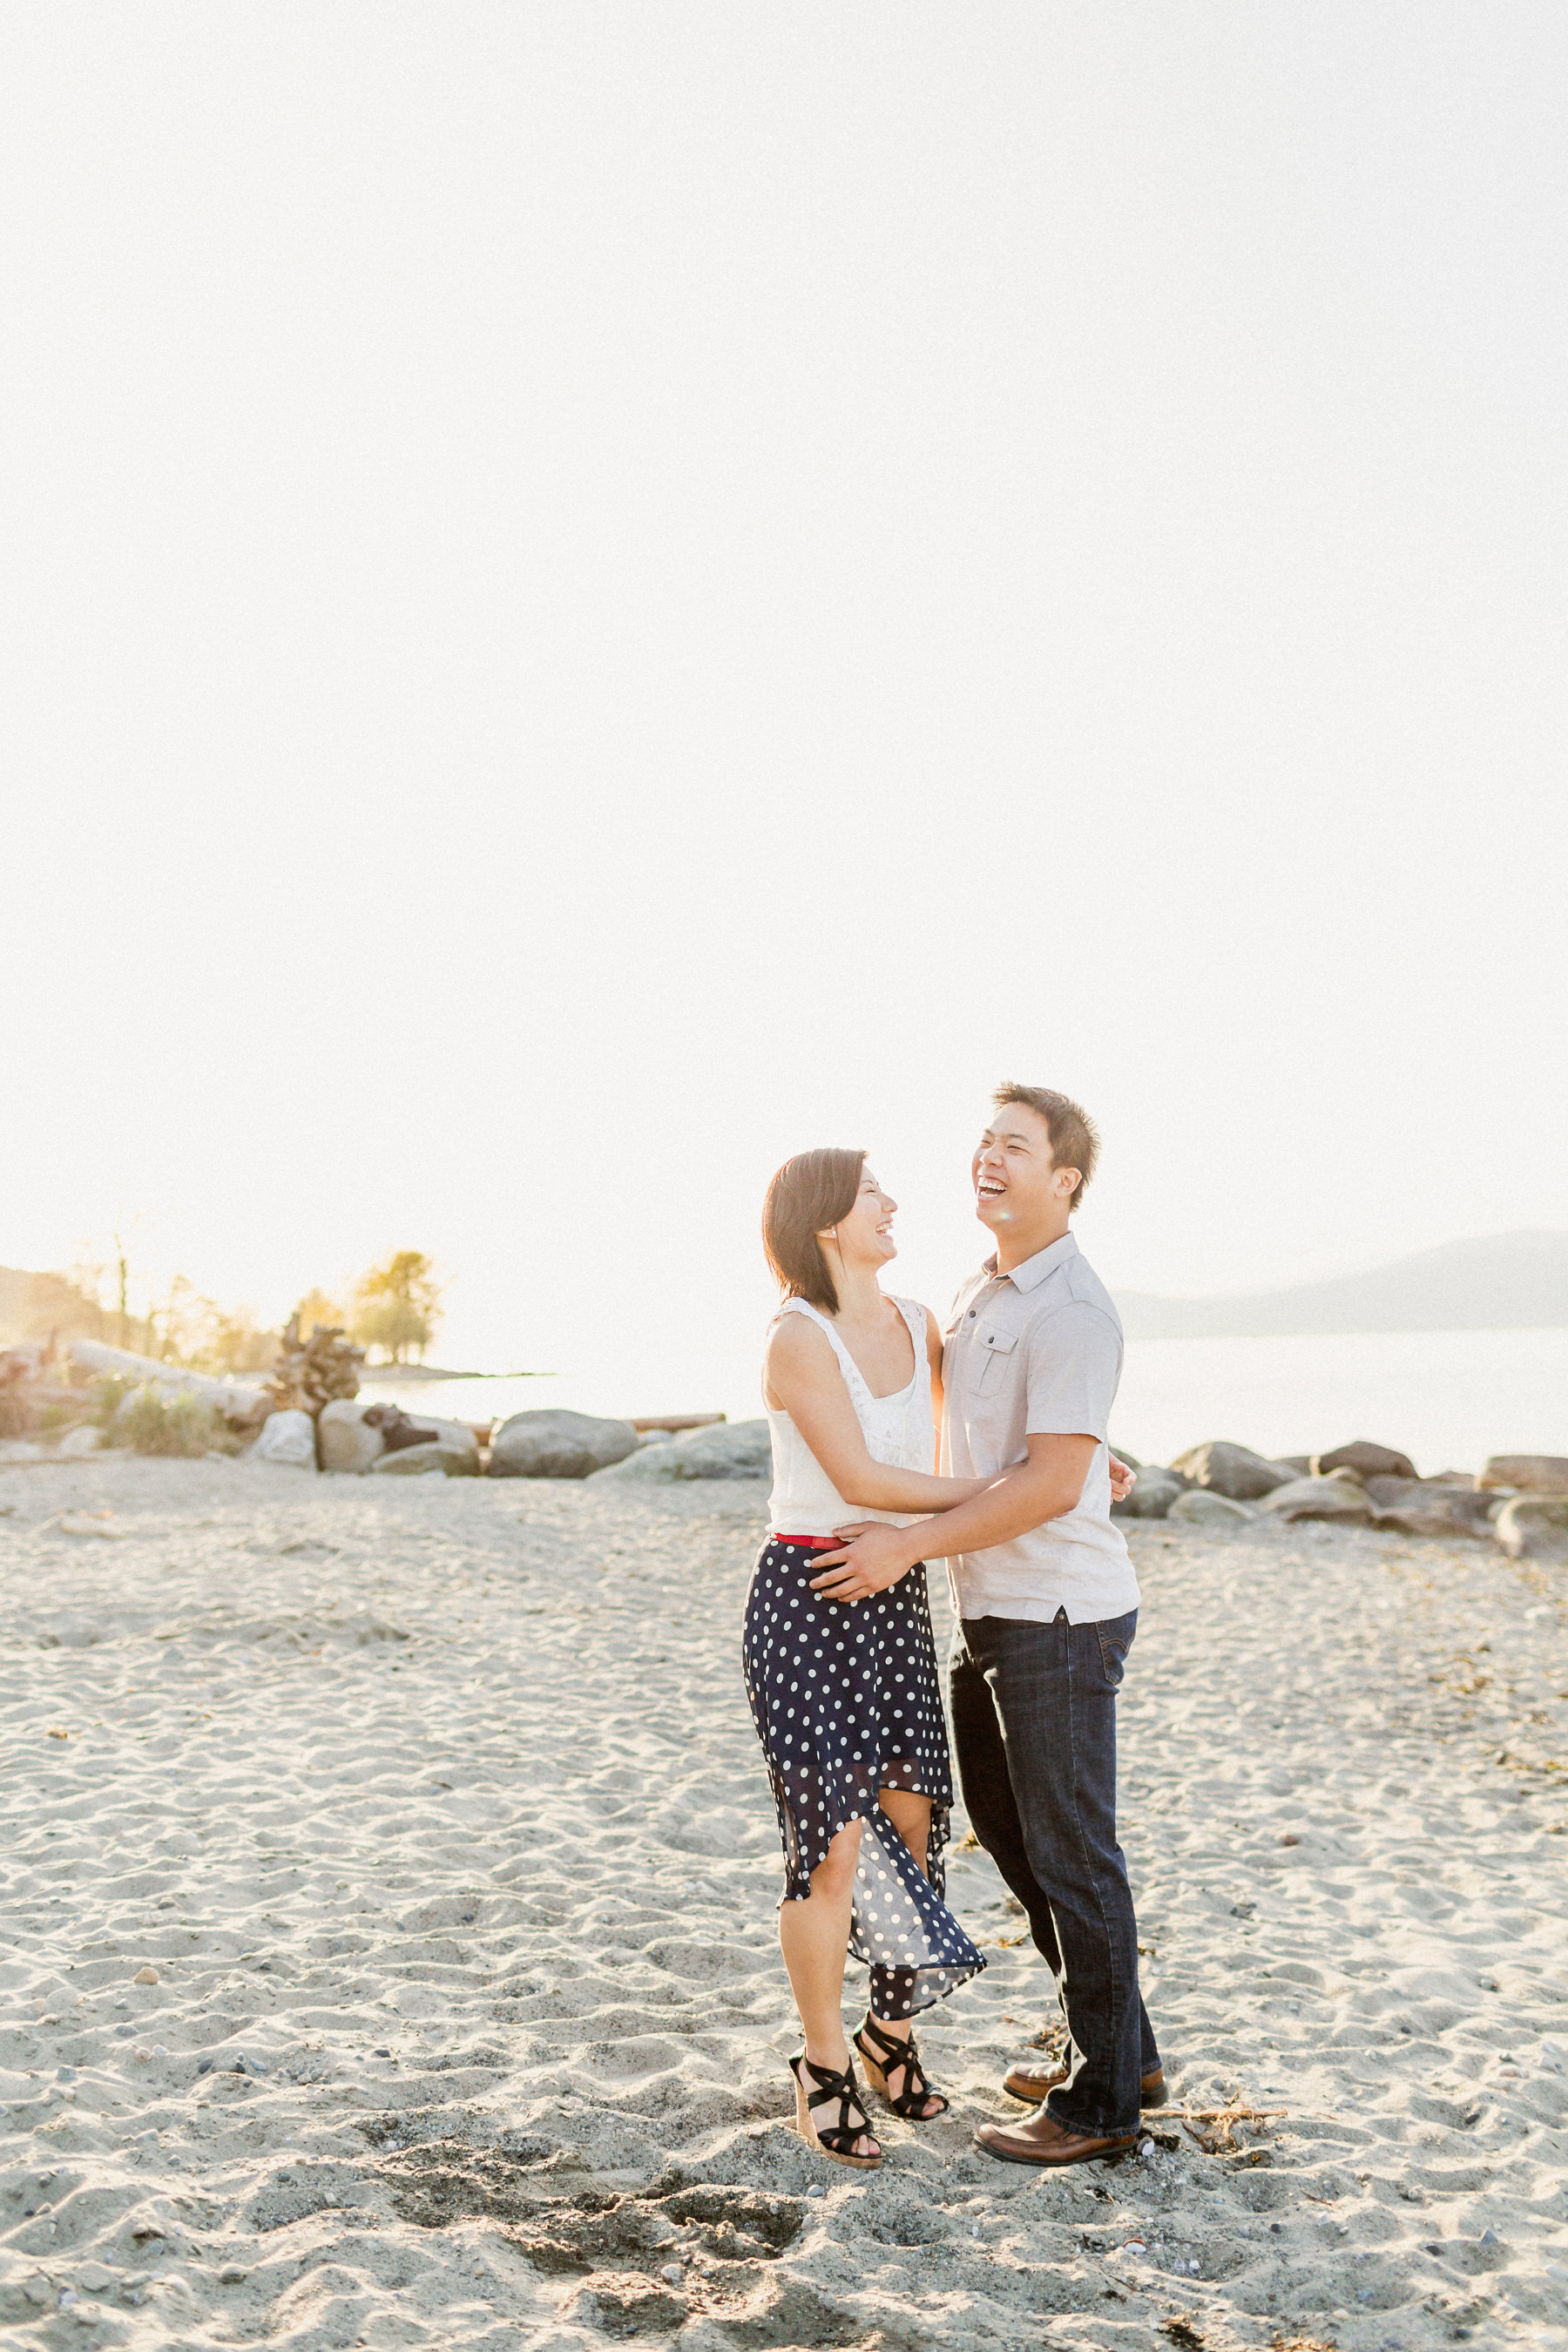 Vancouver Engagement Session Inspiration